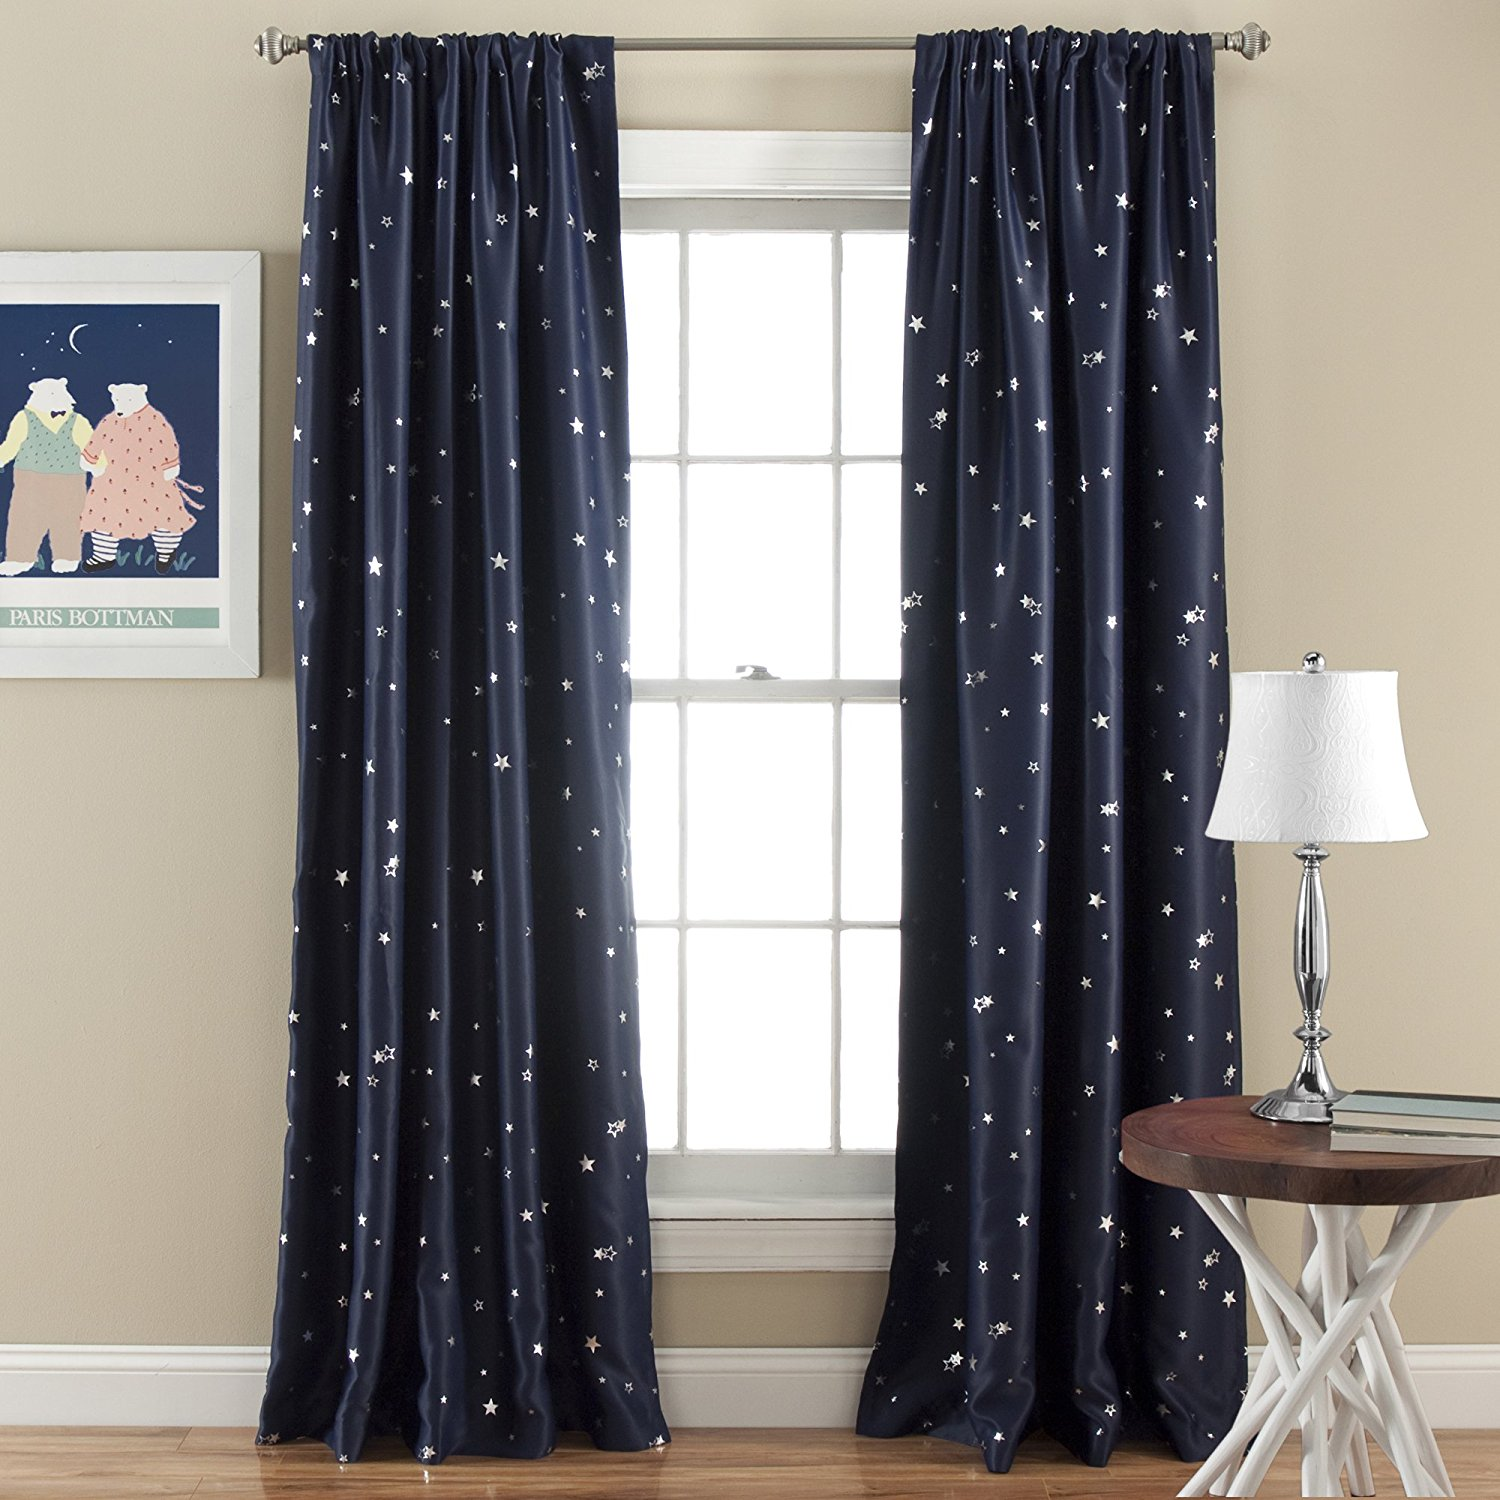 Modern curtain patterns - Star Pattern Modern Window Curtain For Living Room Bedroom Thick Night Curtains Drapery Ready Made